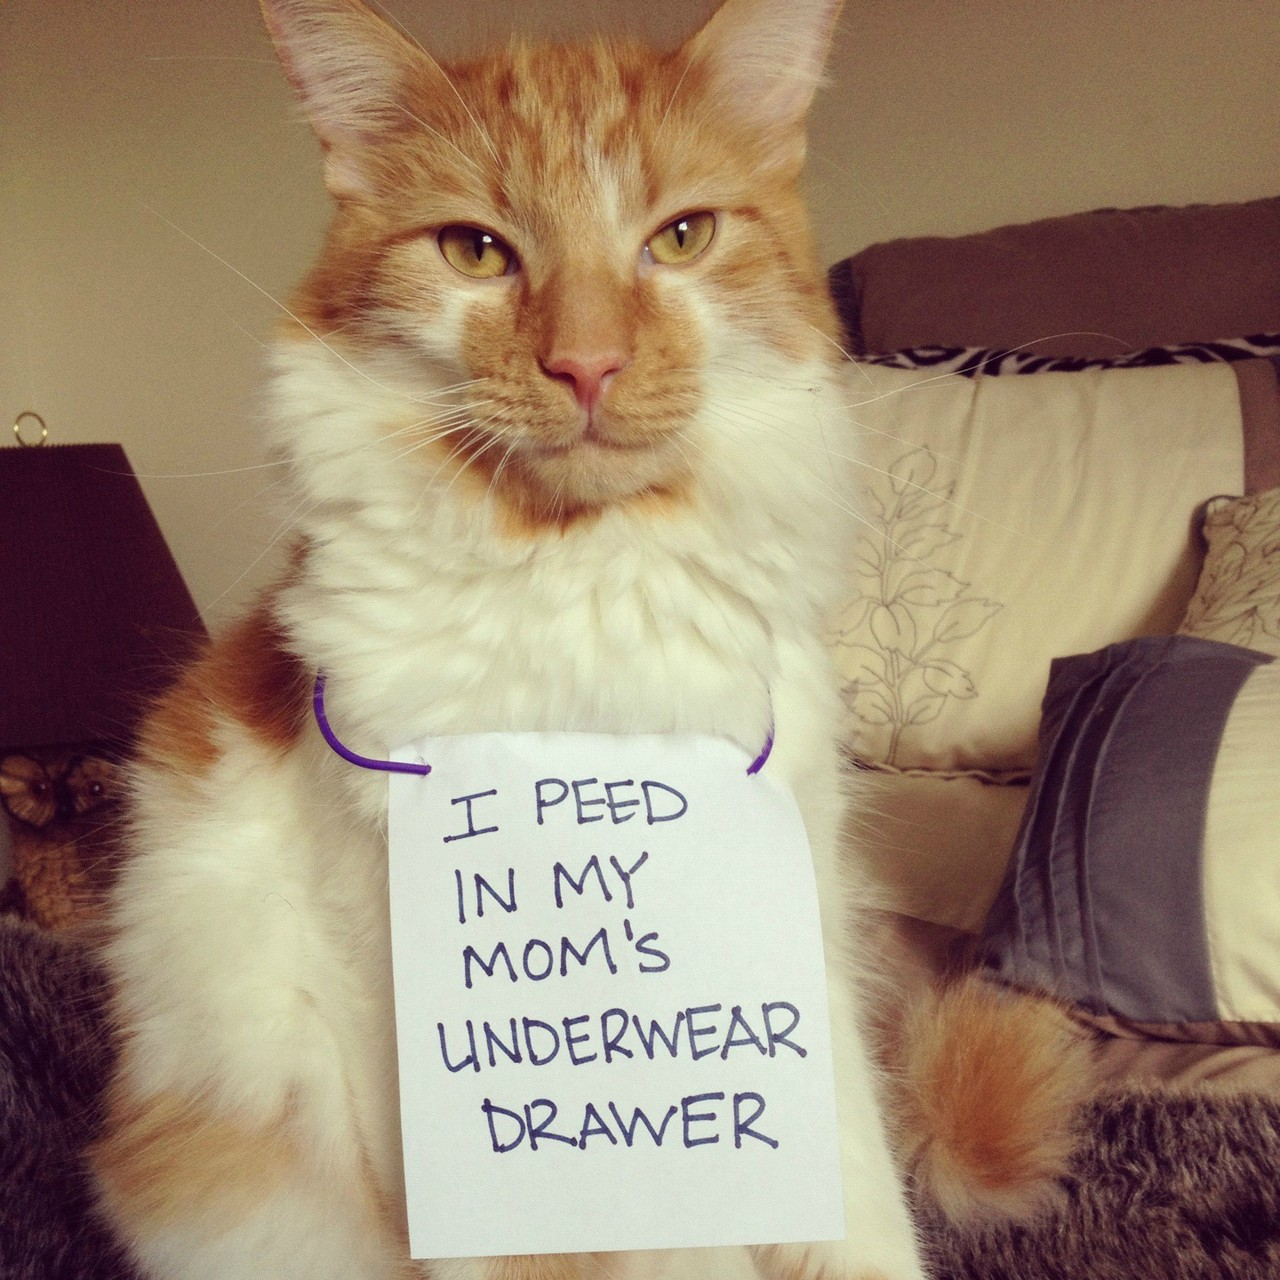 http://www.petshaming.net/mommy-pees-in-them-too/#.U8nZJICSys0